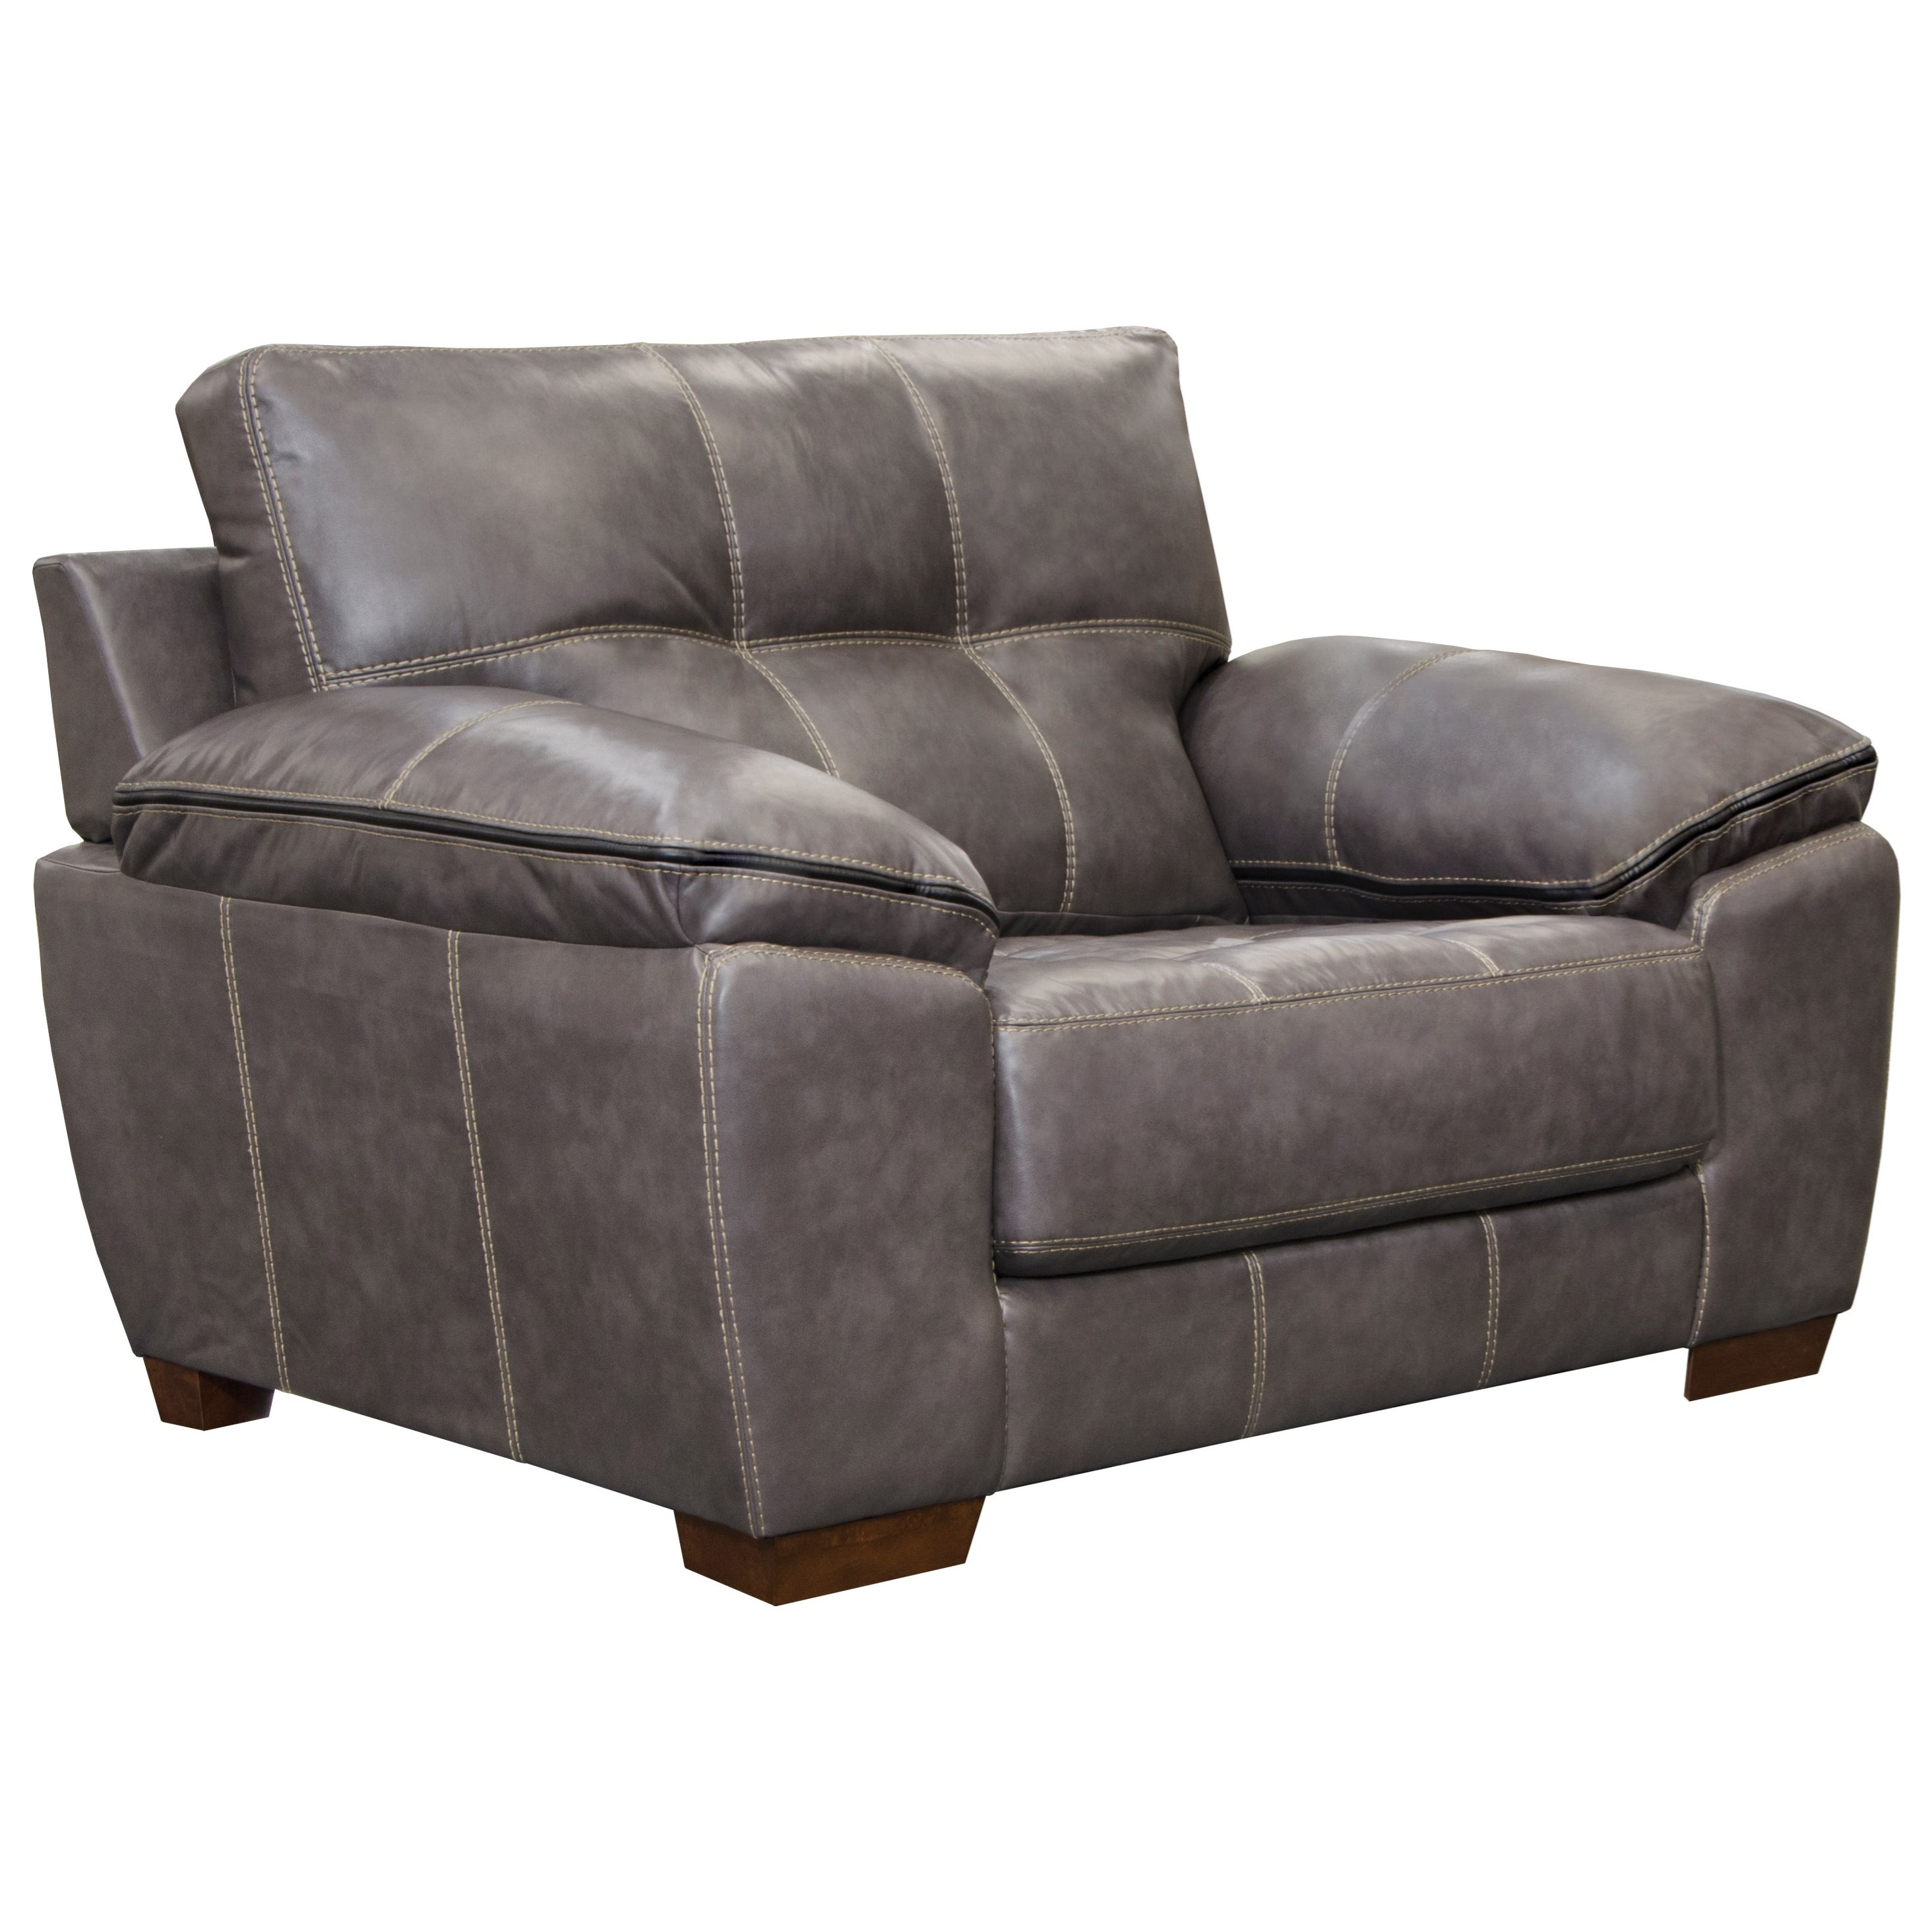 Hudson Chair & a Half by Jackson Furniture at Value City Furniture